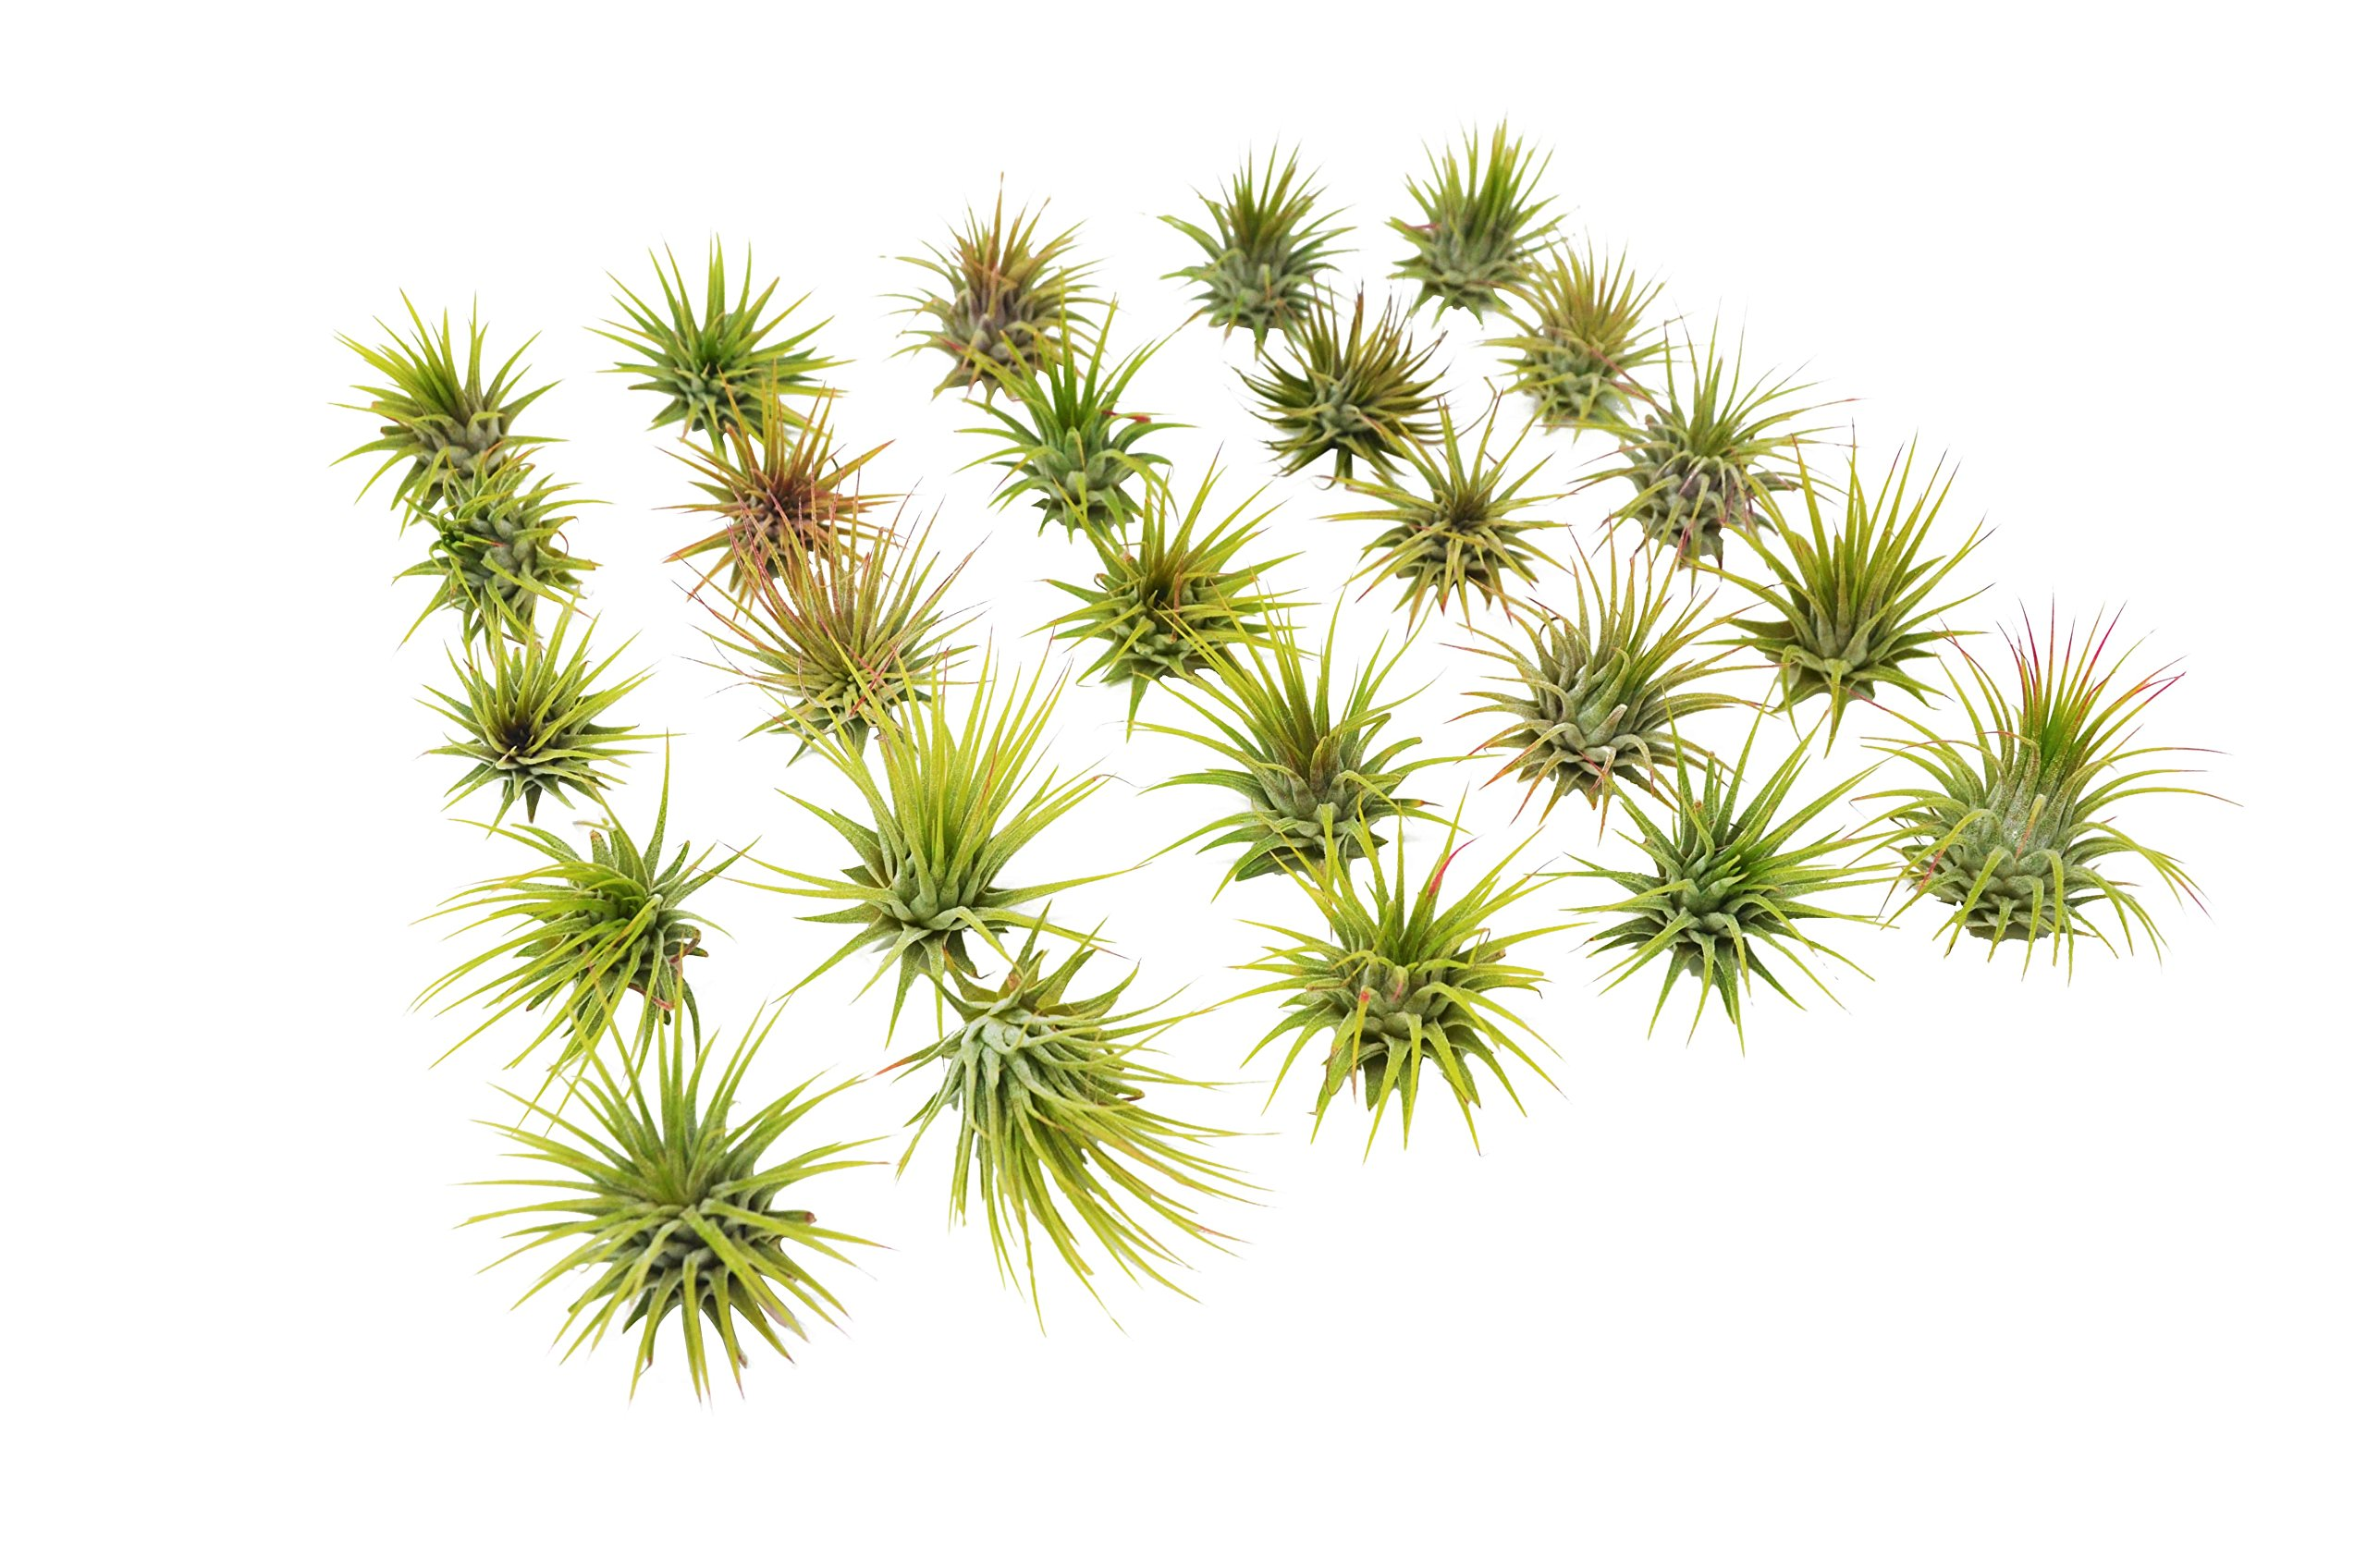 Bulk Ionantha Air Plant Pack / 2-3 Inches Large / Wholesale (25 and 50 Packs) (25)